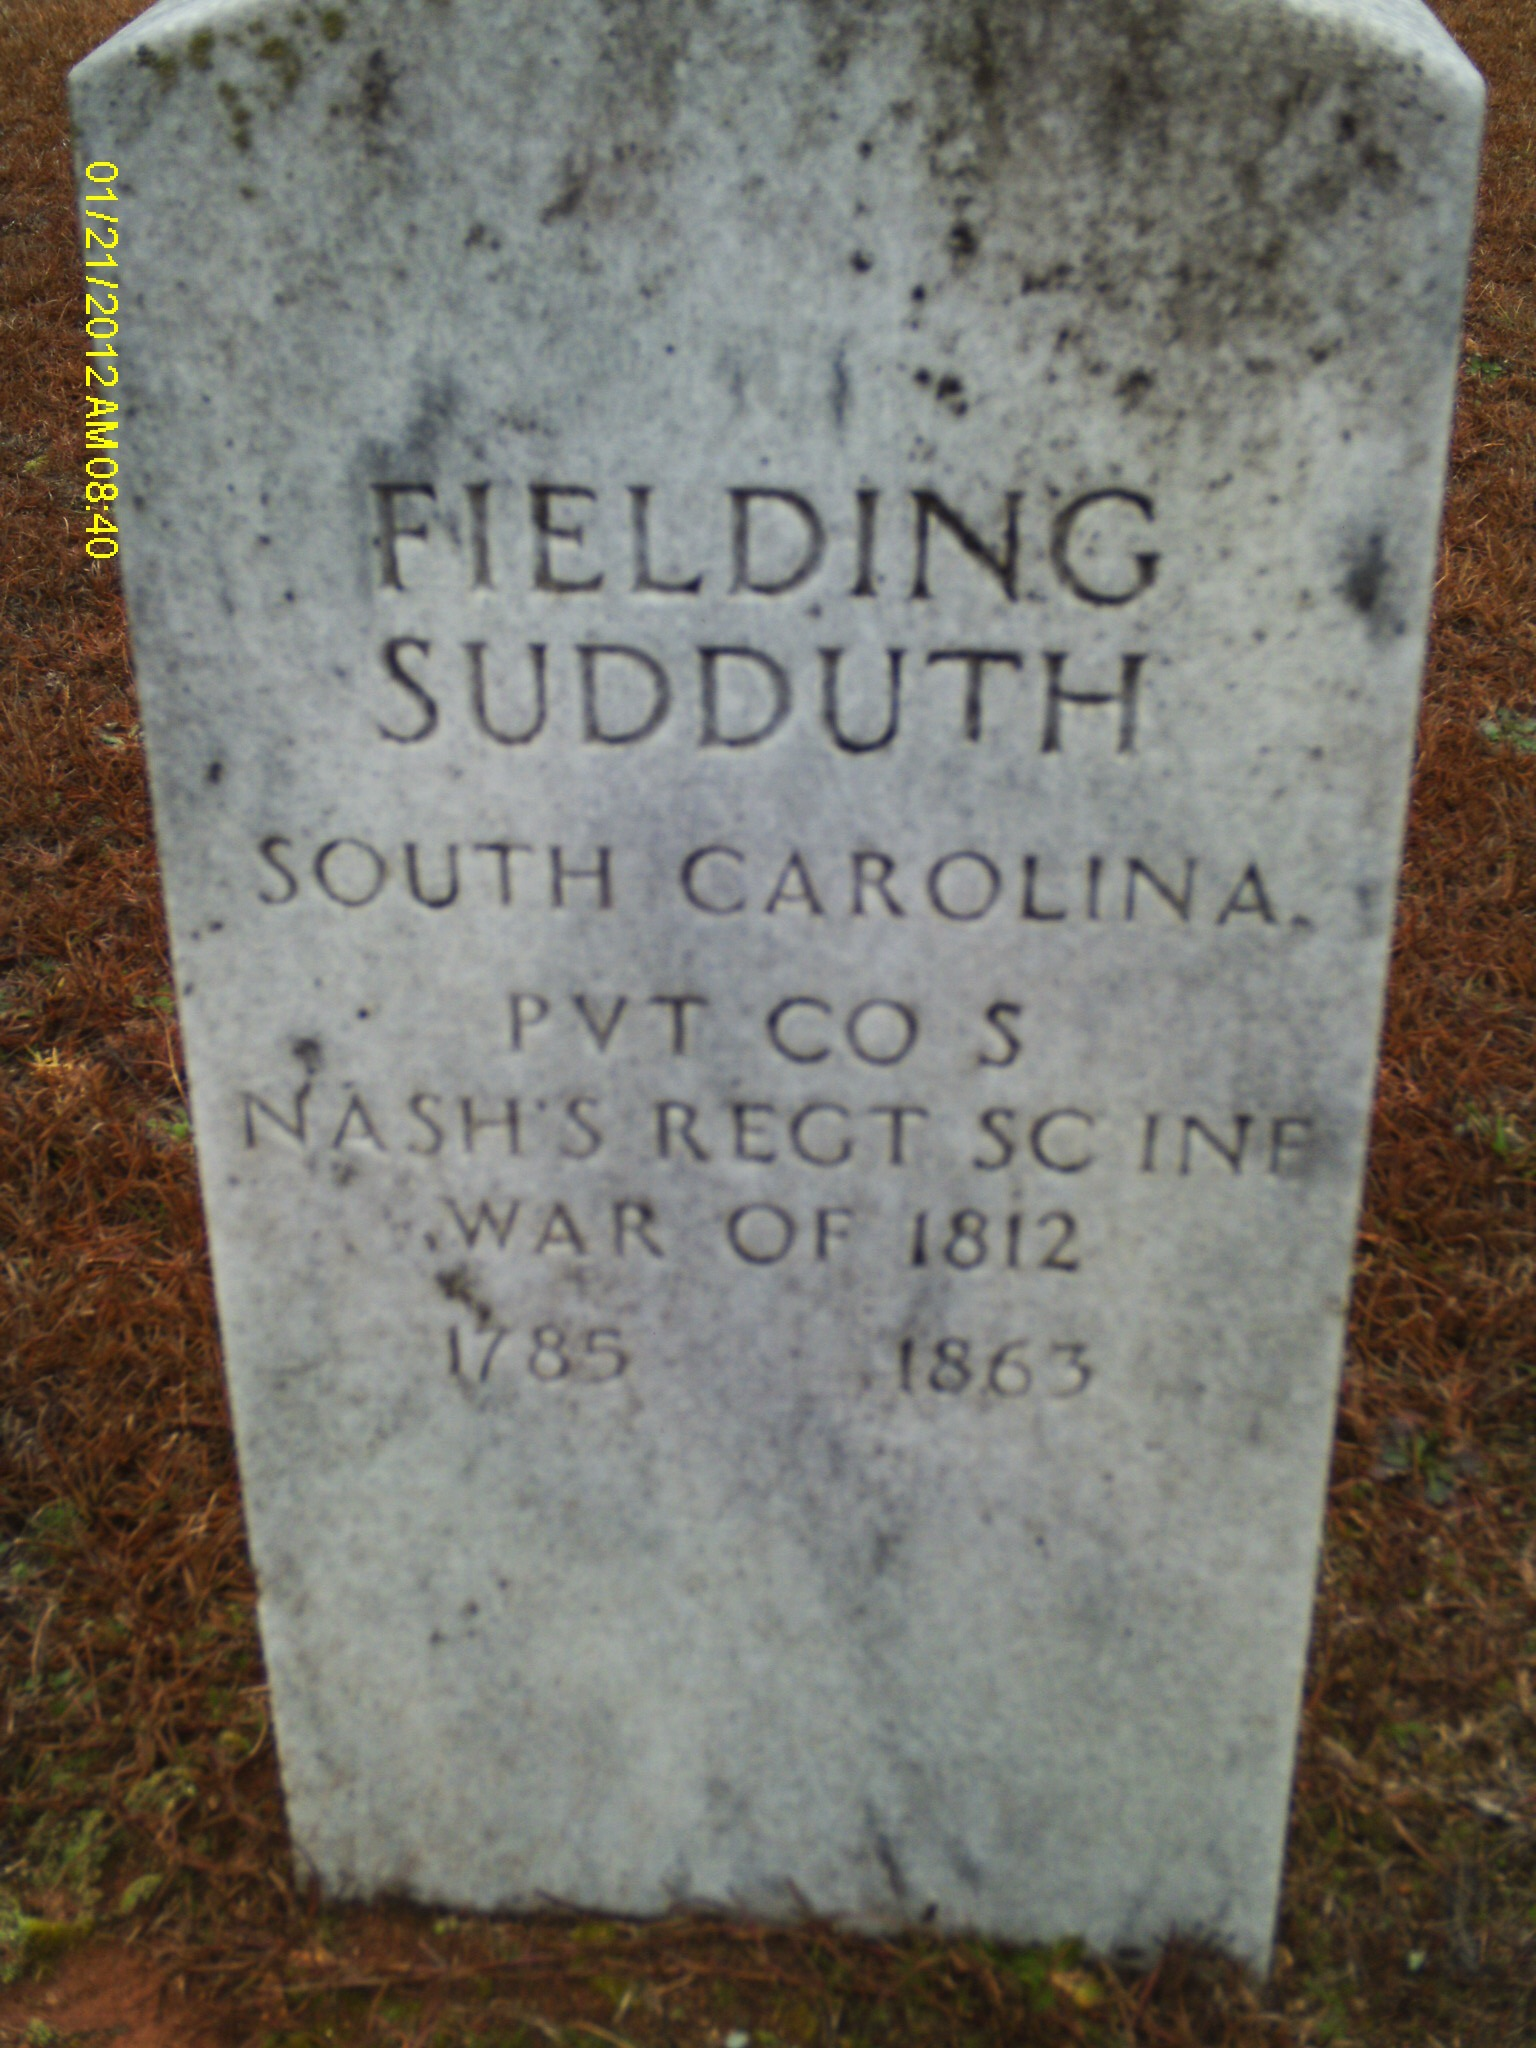 John Sudduth